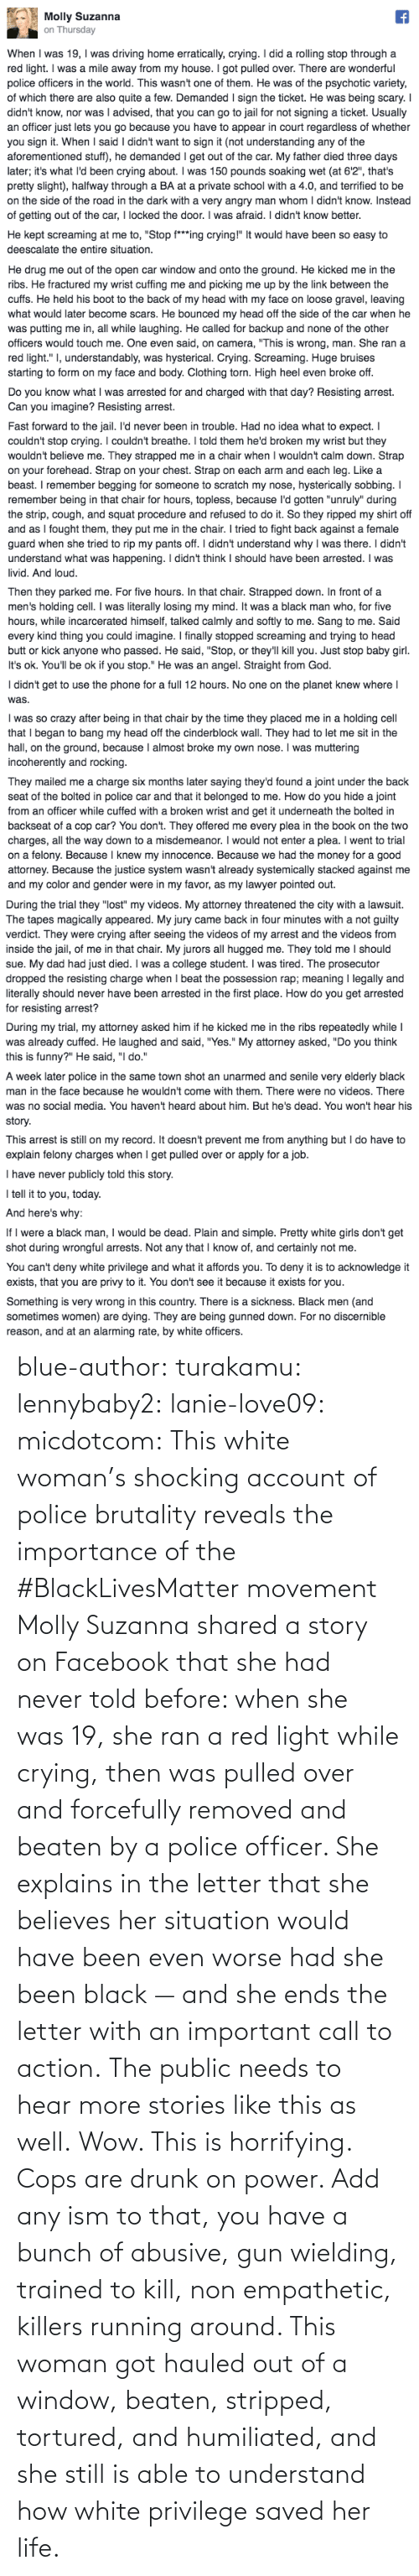 Non: blue-author: turakamu:  lennybaby2:  lanie-love09:  micdotcom:  This white woman's shocking account of police brutality reveals the importance of the #BlackLivesMatter movement Molly Suzanna shared a story on Facebook that she had never told before: when she was 19, she ran a red light while crying, then was pulled over and forcefully removed and beaten by a police officer. She explains in the letter that she believes her situation would have been even worse had she been black — and she ends the letter with an important call to action.  The public needs to hear more stories like this as well.  Wow. This is horrifying.  Cops are drunk on power. Add any ism to that, you have a bunch of abusive, gun wielding, trained to kill, non empathetic, killers running around.    This woman got hauled out of a window, beaten, stripped, tortured, and humiliated, and she still is able to understand how white privilege saved her life.